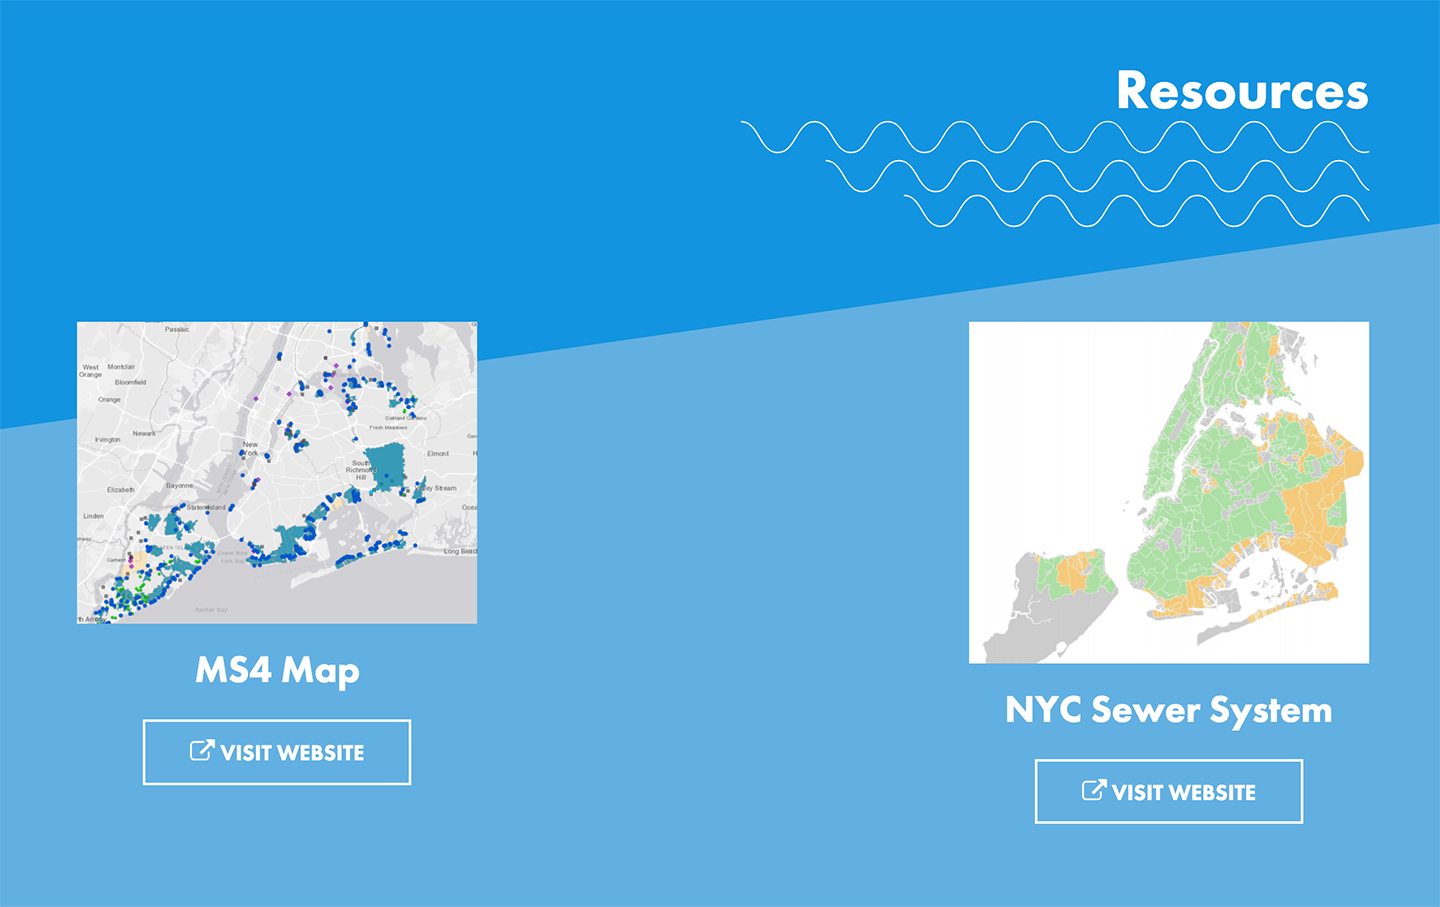 Cut the Crap NYC: Cut the Crap: Featured Resources